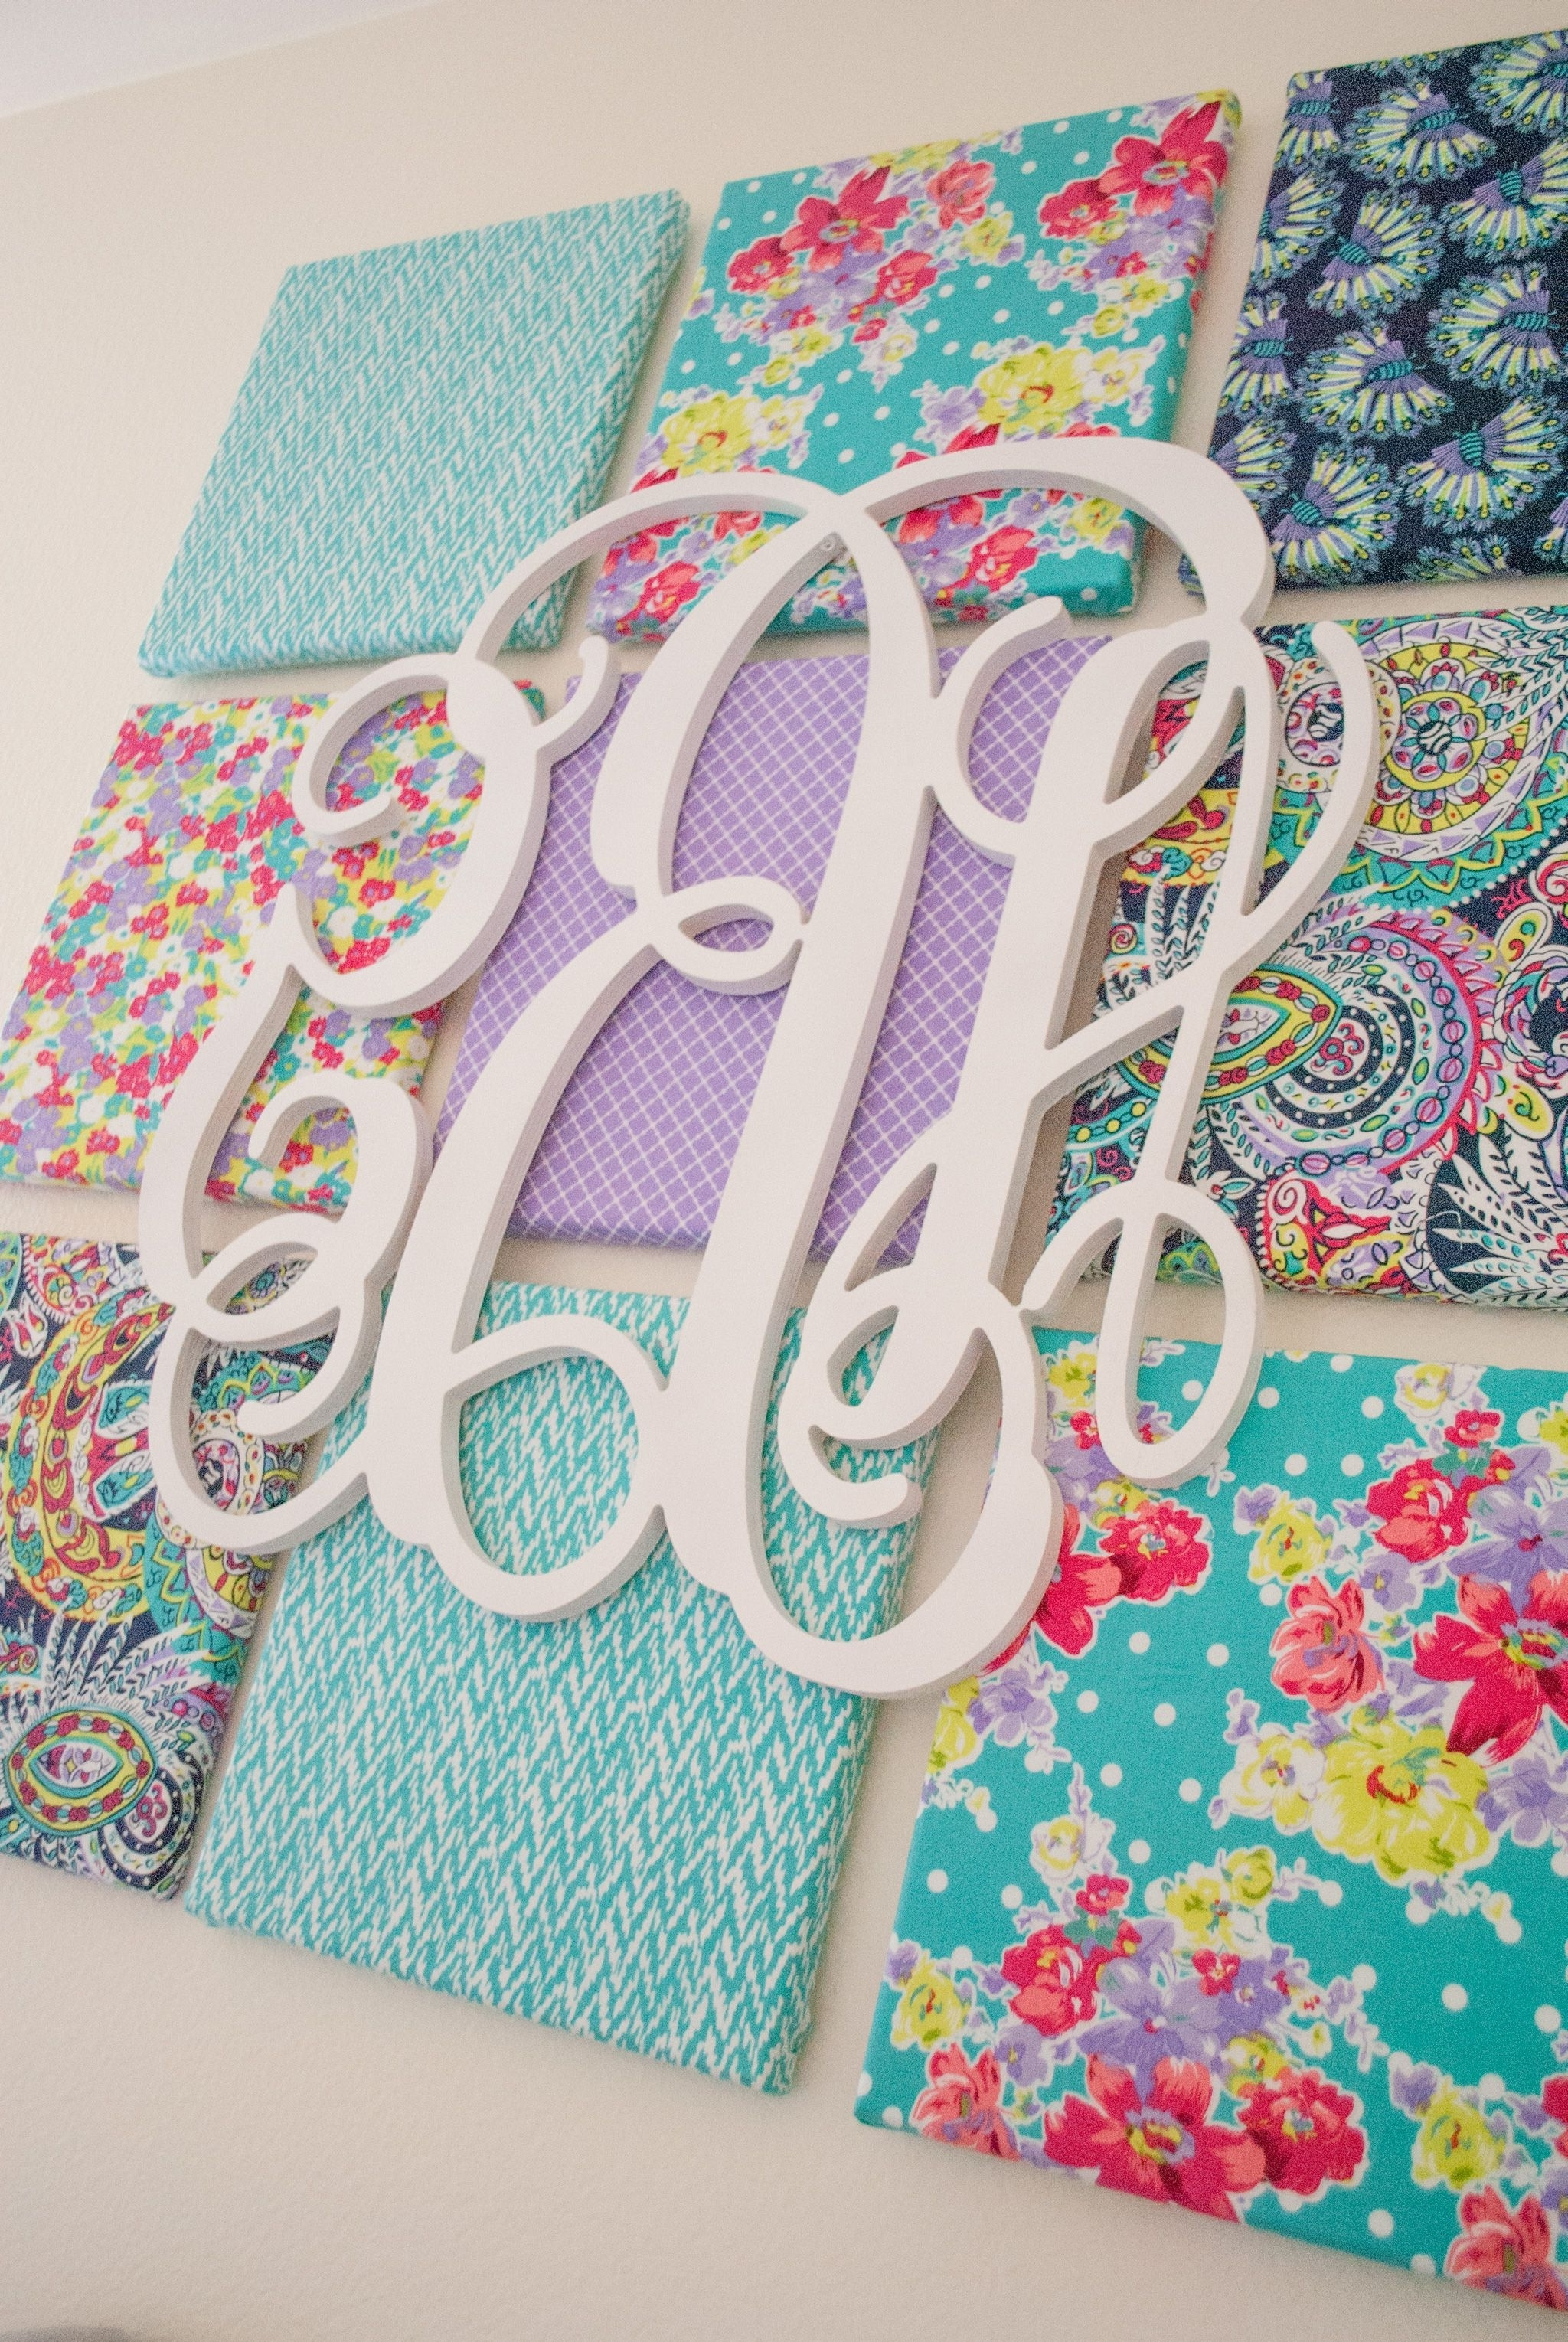 Monogram Wall, Kids Rooms And Monograms In Fabric Wall Art For Nursery (View 8 of 15)